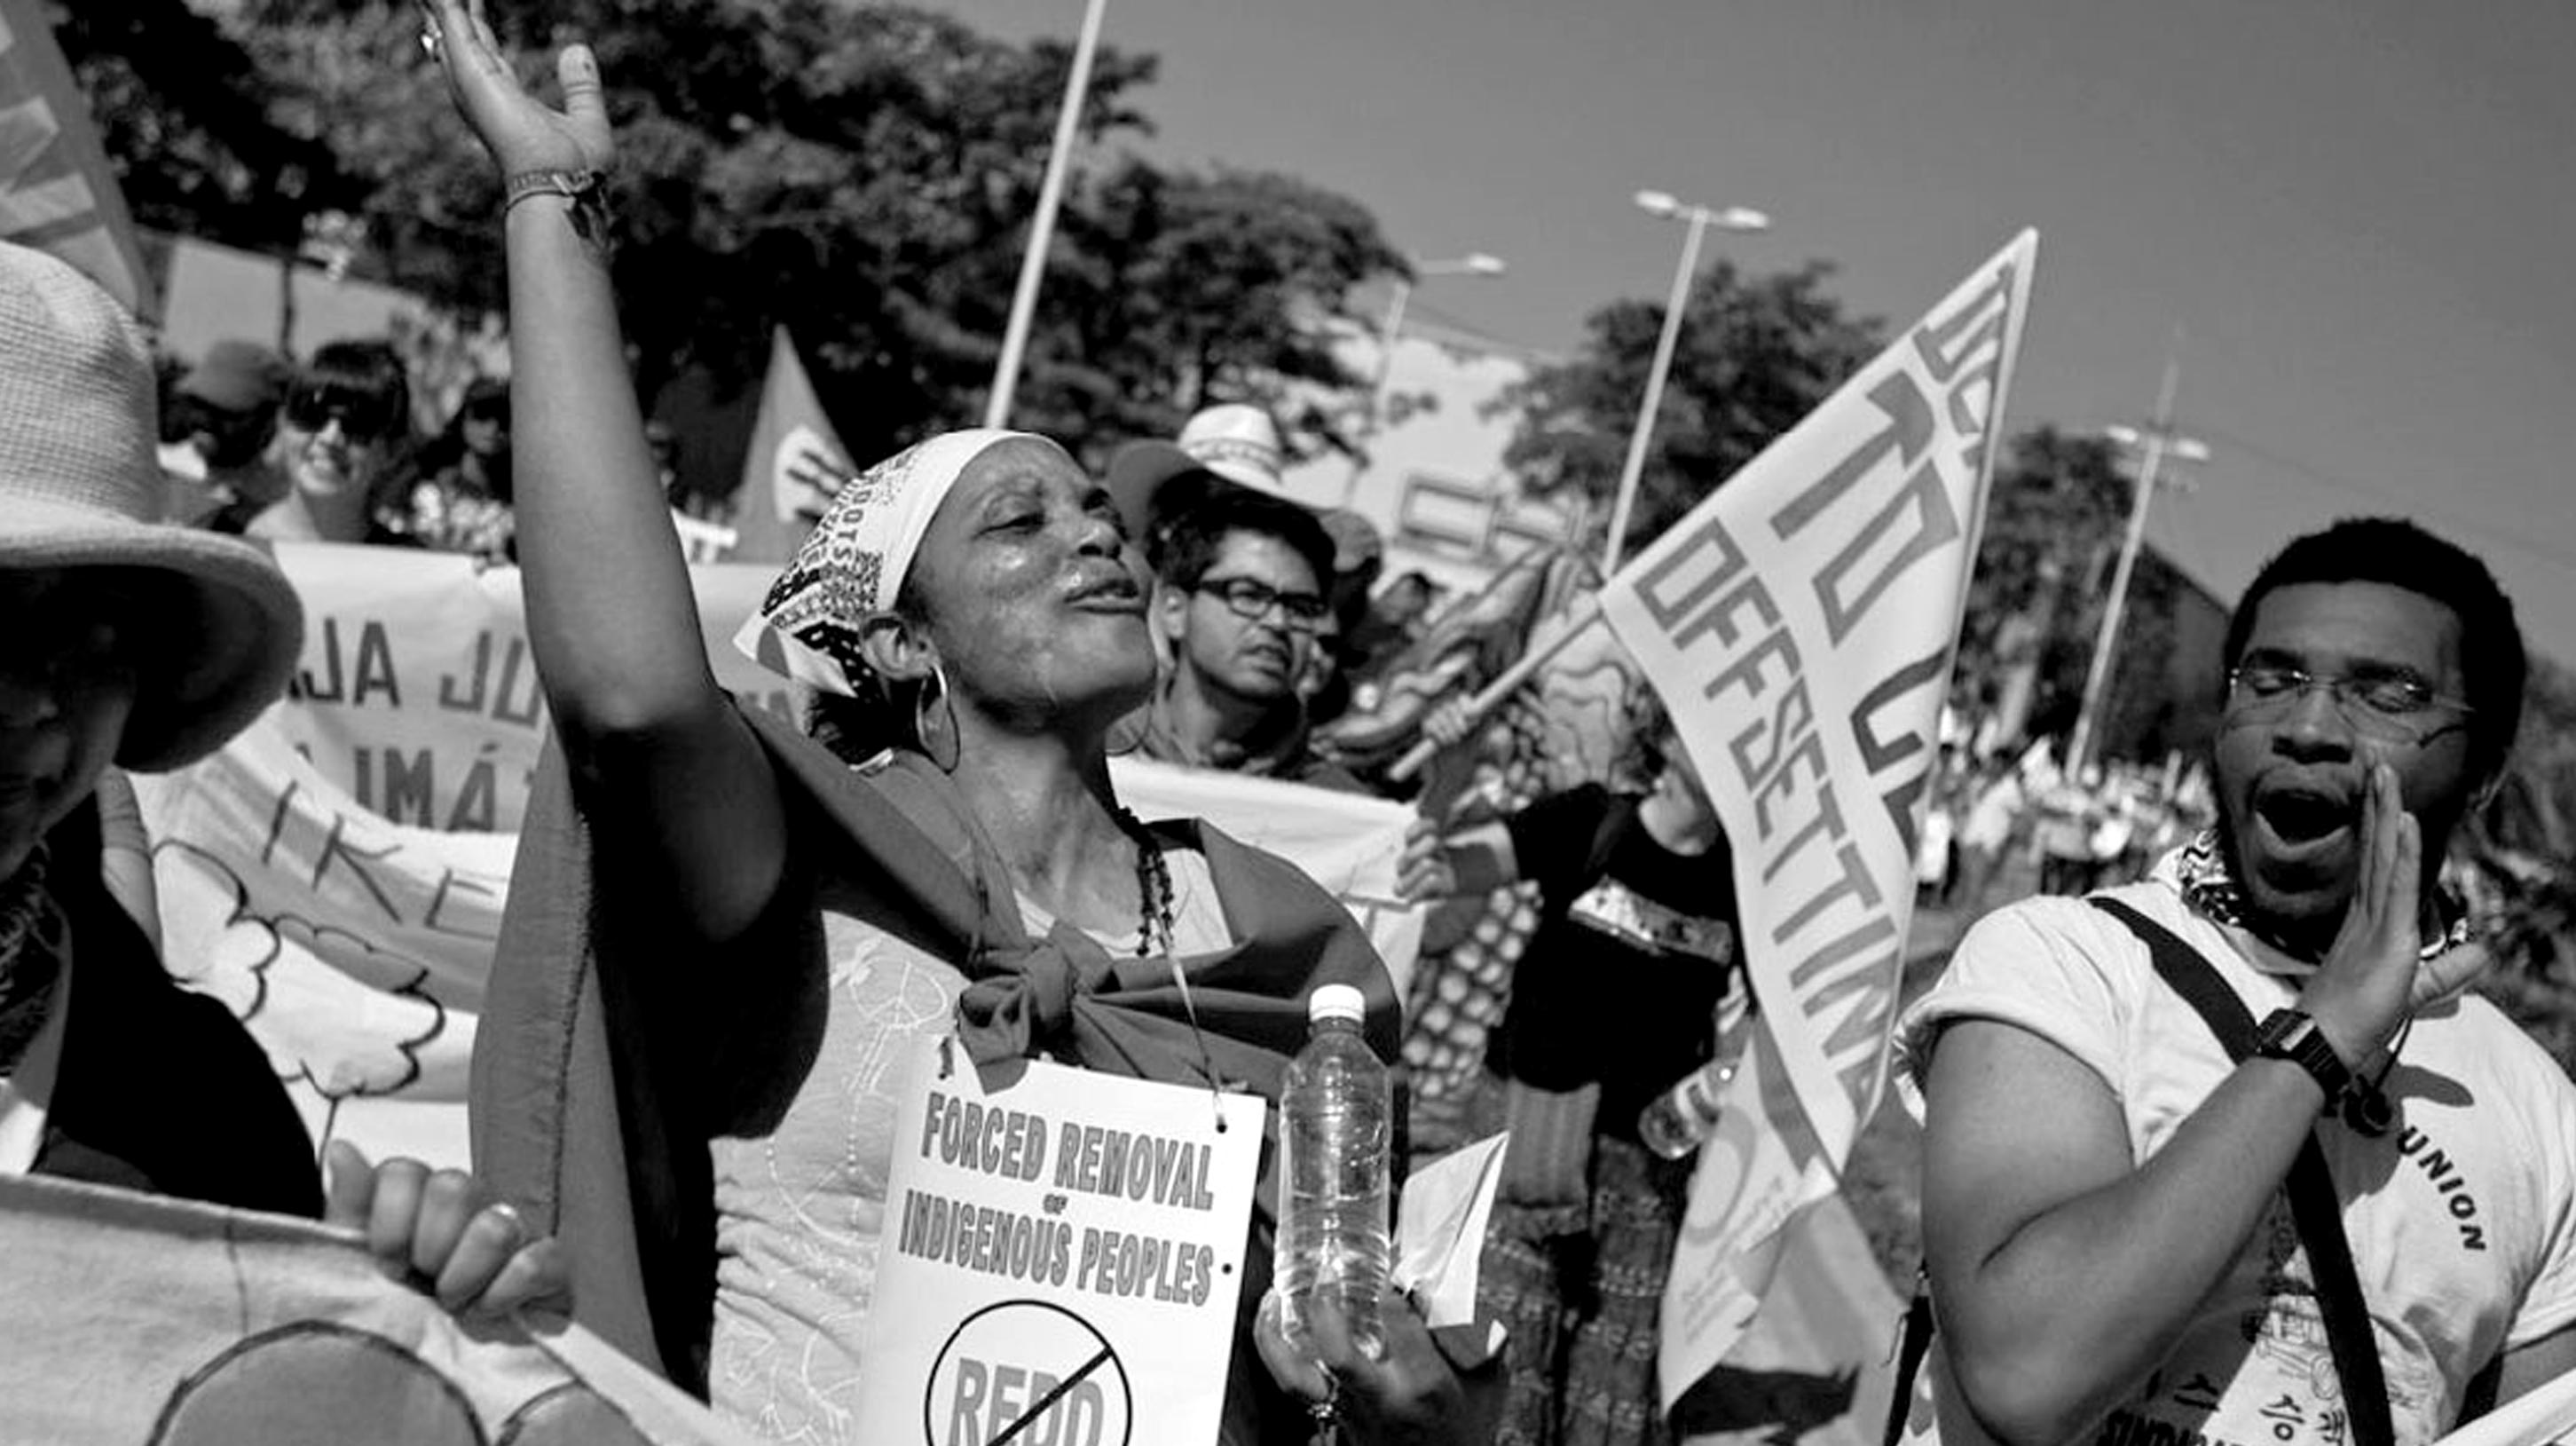 Indigenous people demonstrate at the 2010 climate change summit in Cancun. Image: Kari Koch.